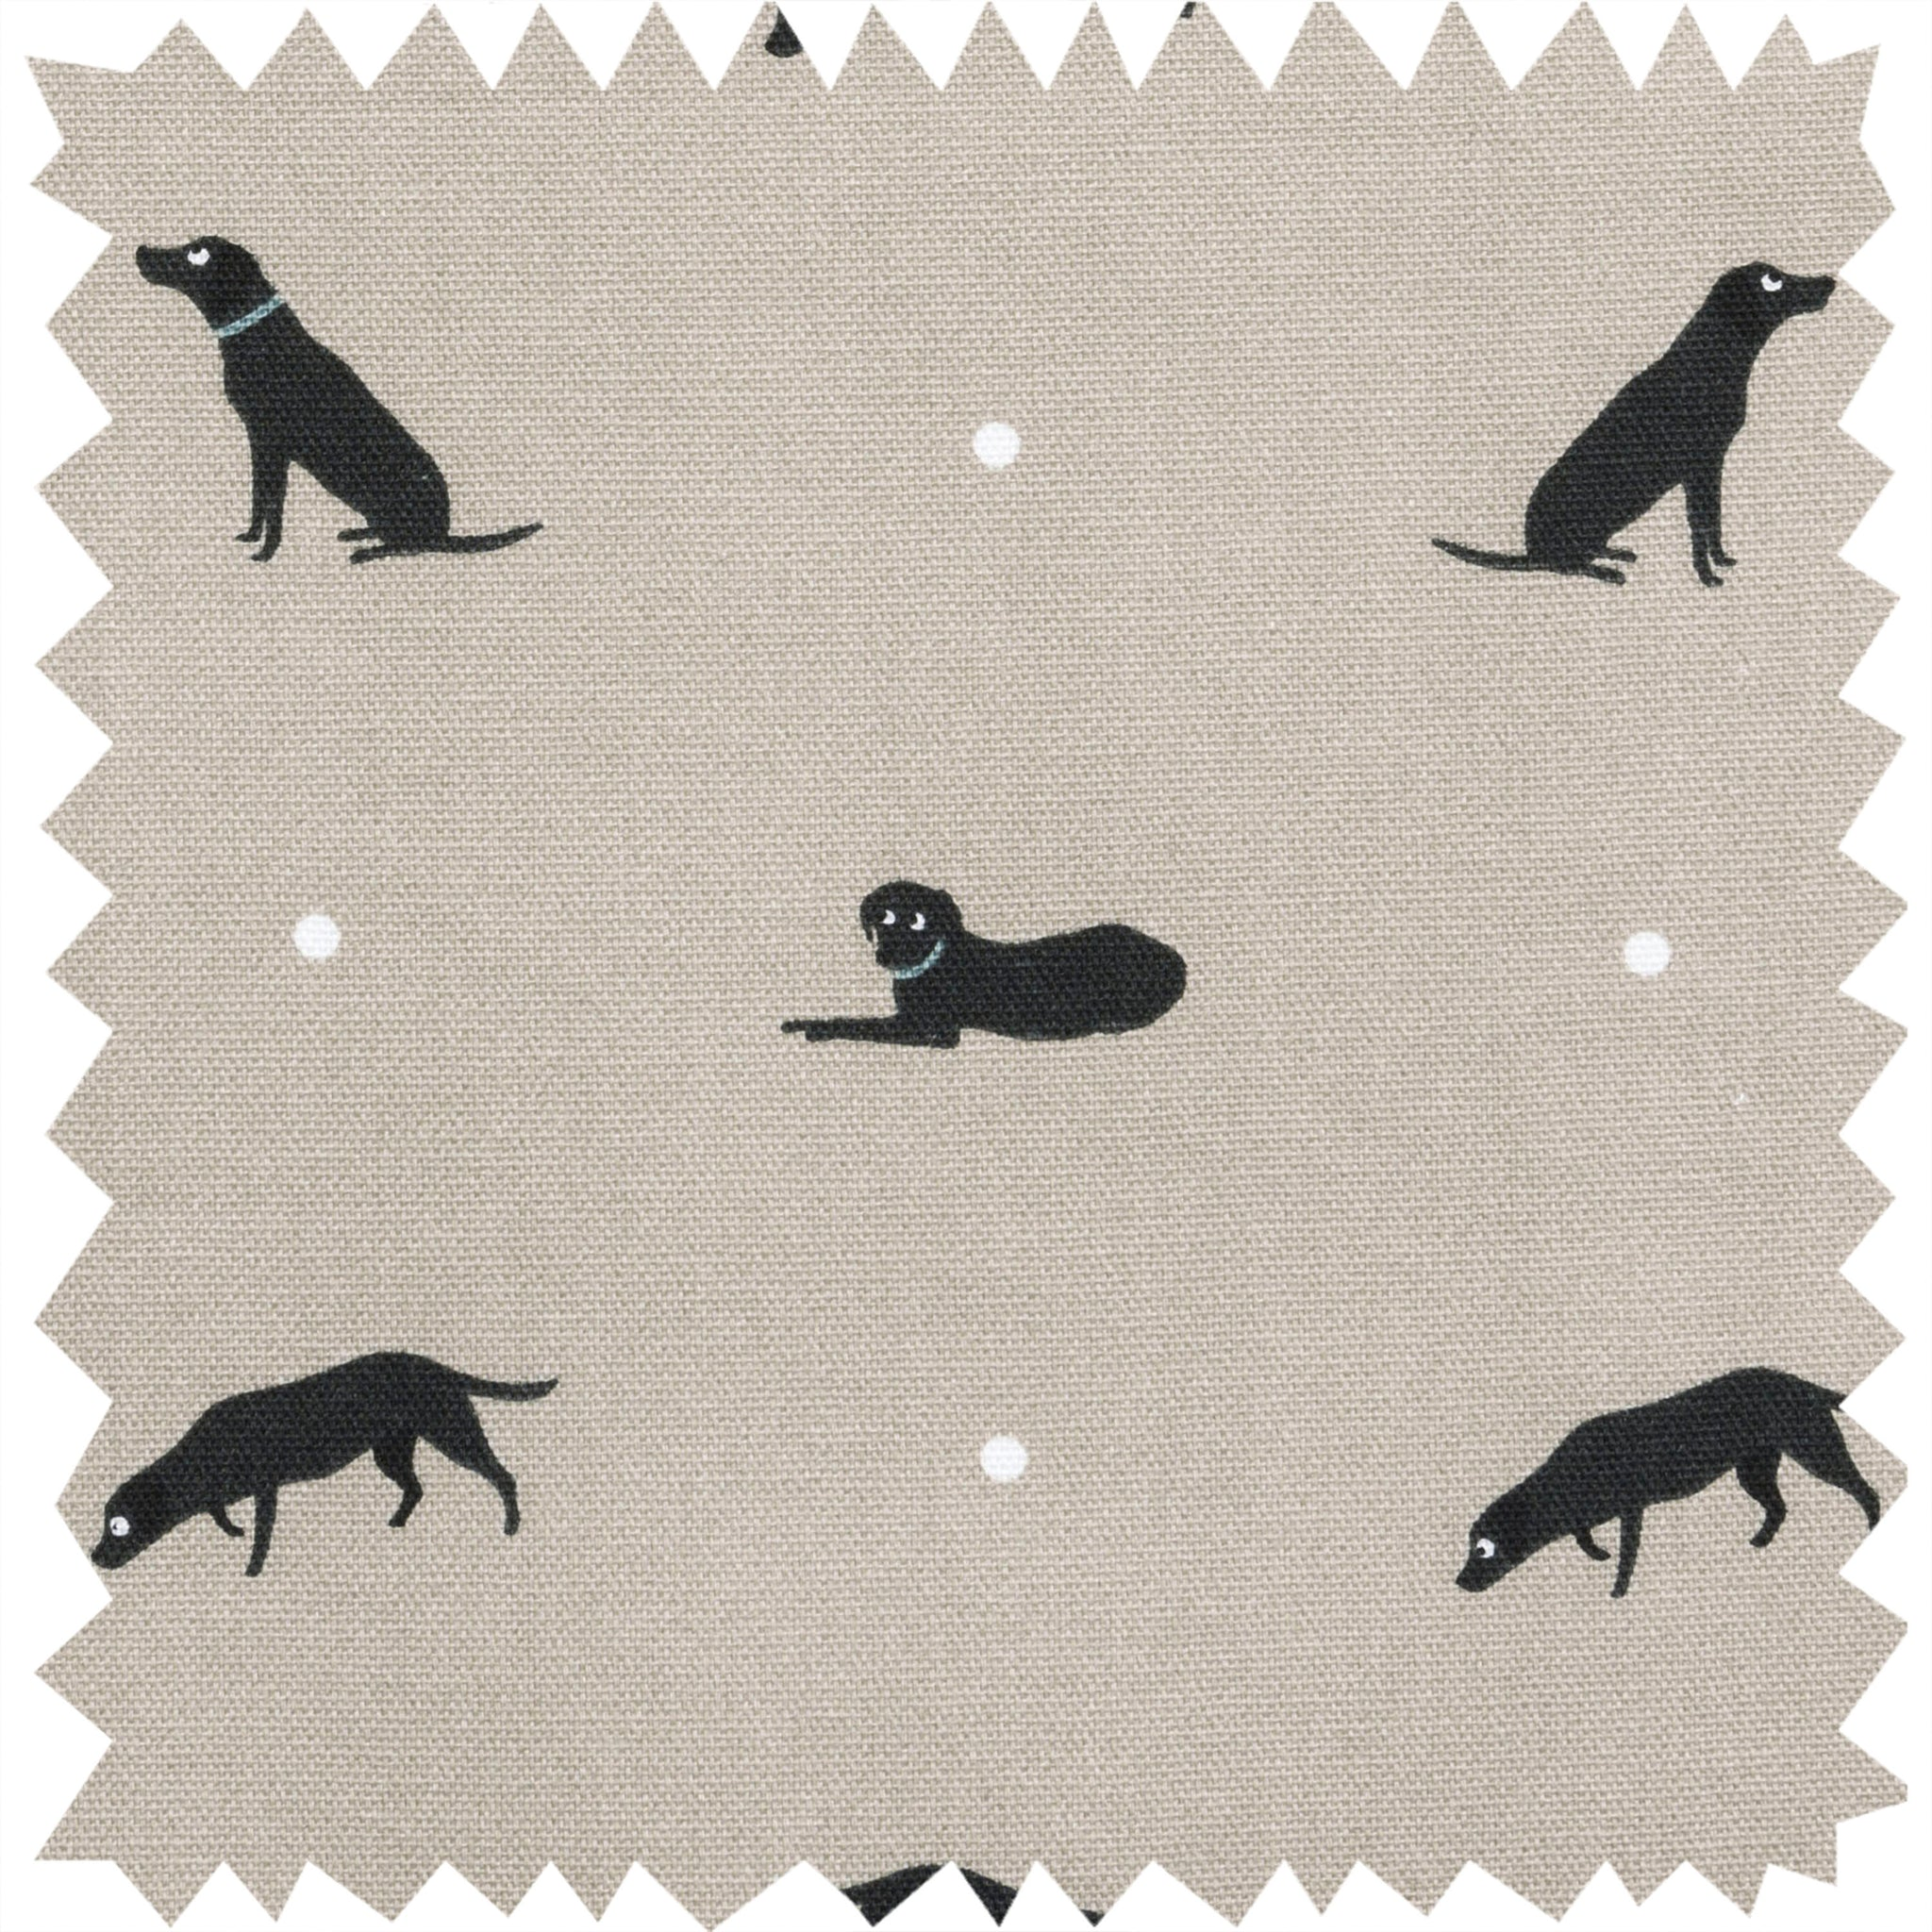 Labrador Fabric by the Metre